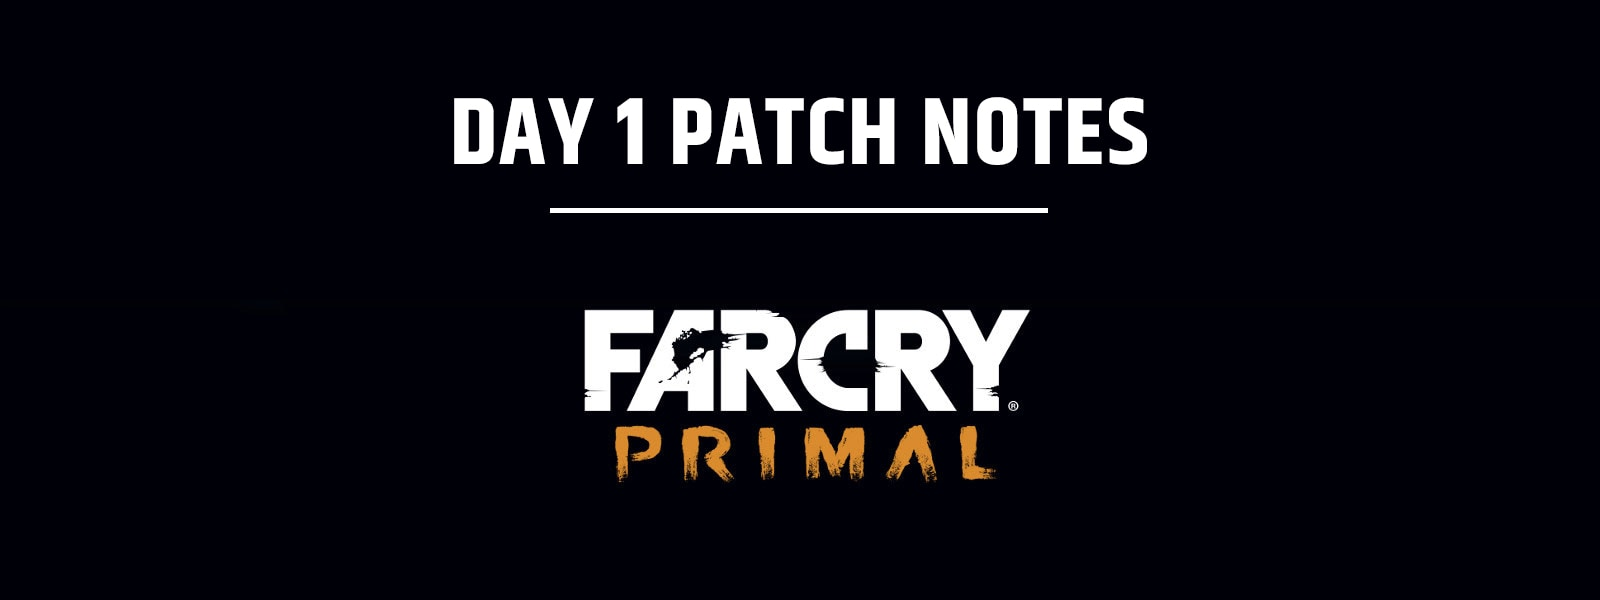 [2016-02-23] Day 1 Patch Notes - HEADER